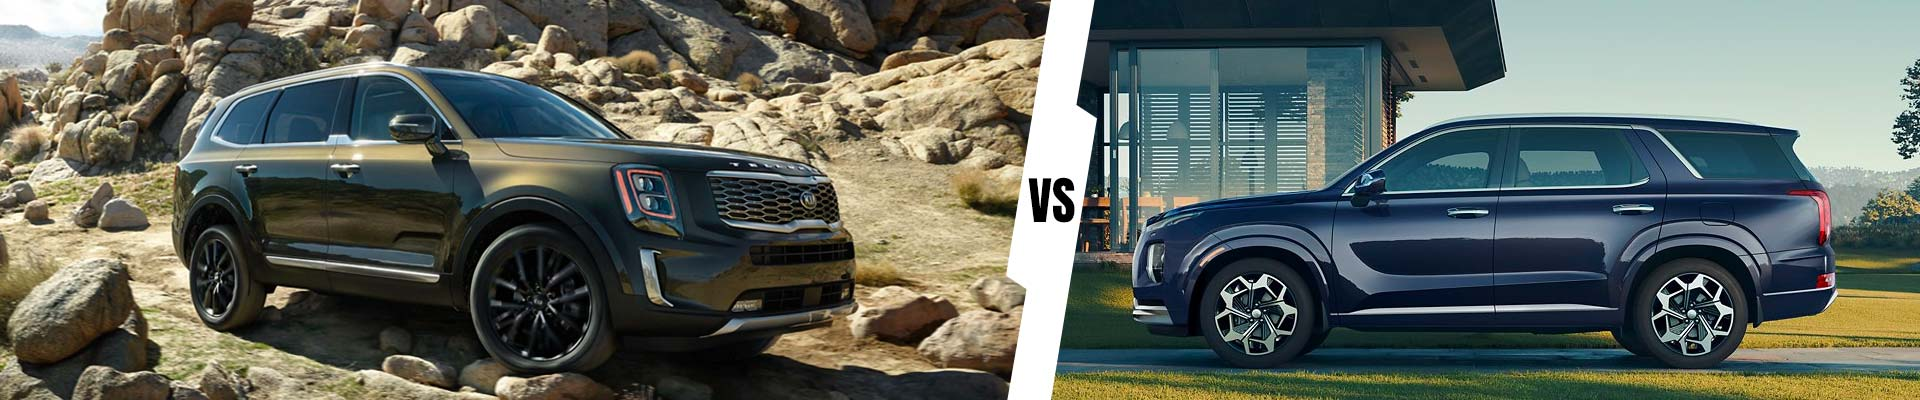 Three-Row SUV Comparision: 2021 Kia Telluride Vs. 2021 Hyundai Palisade